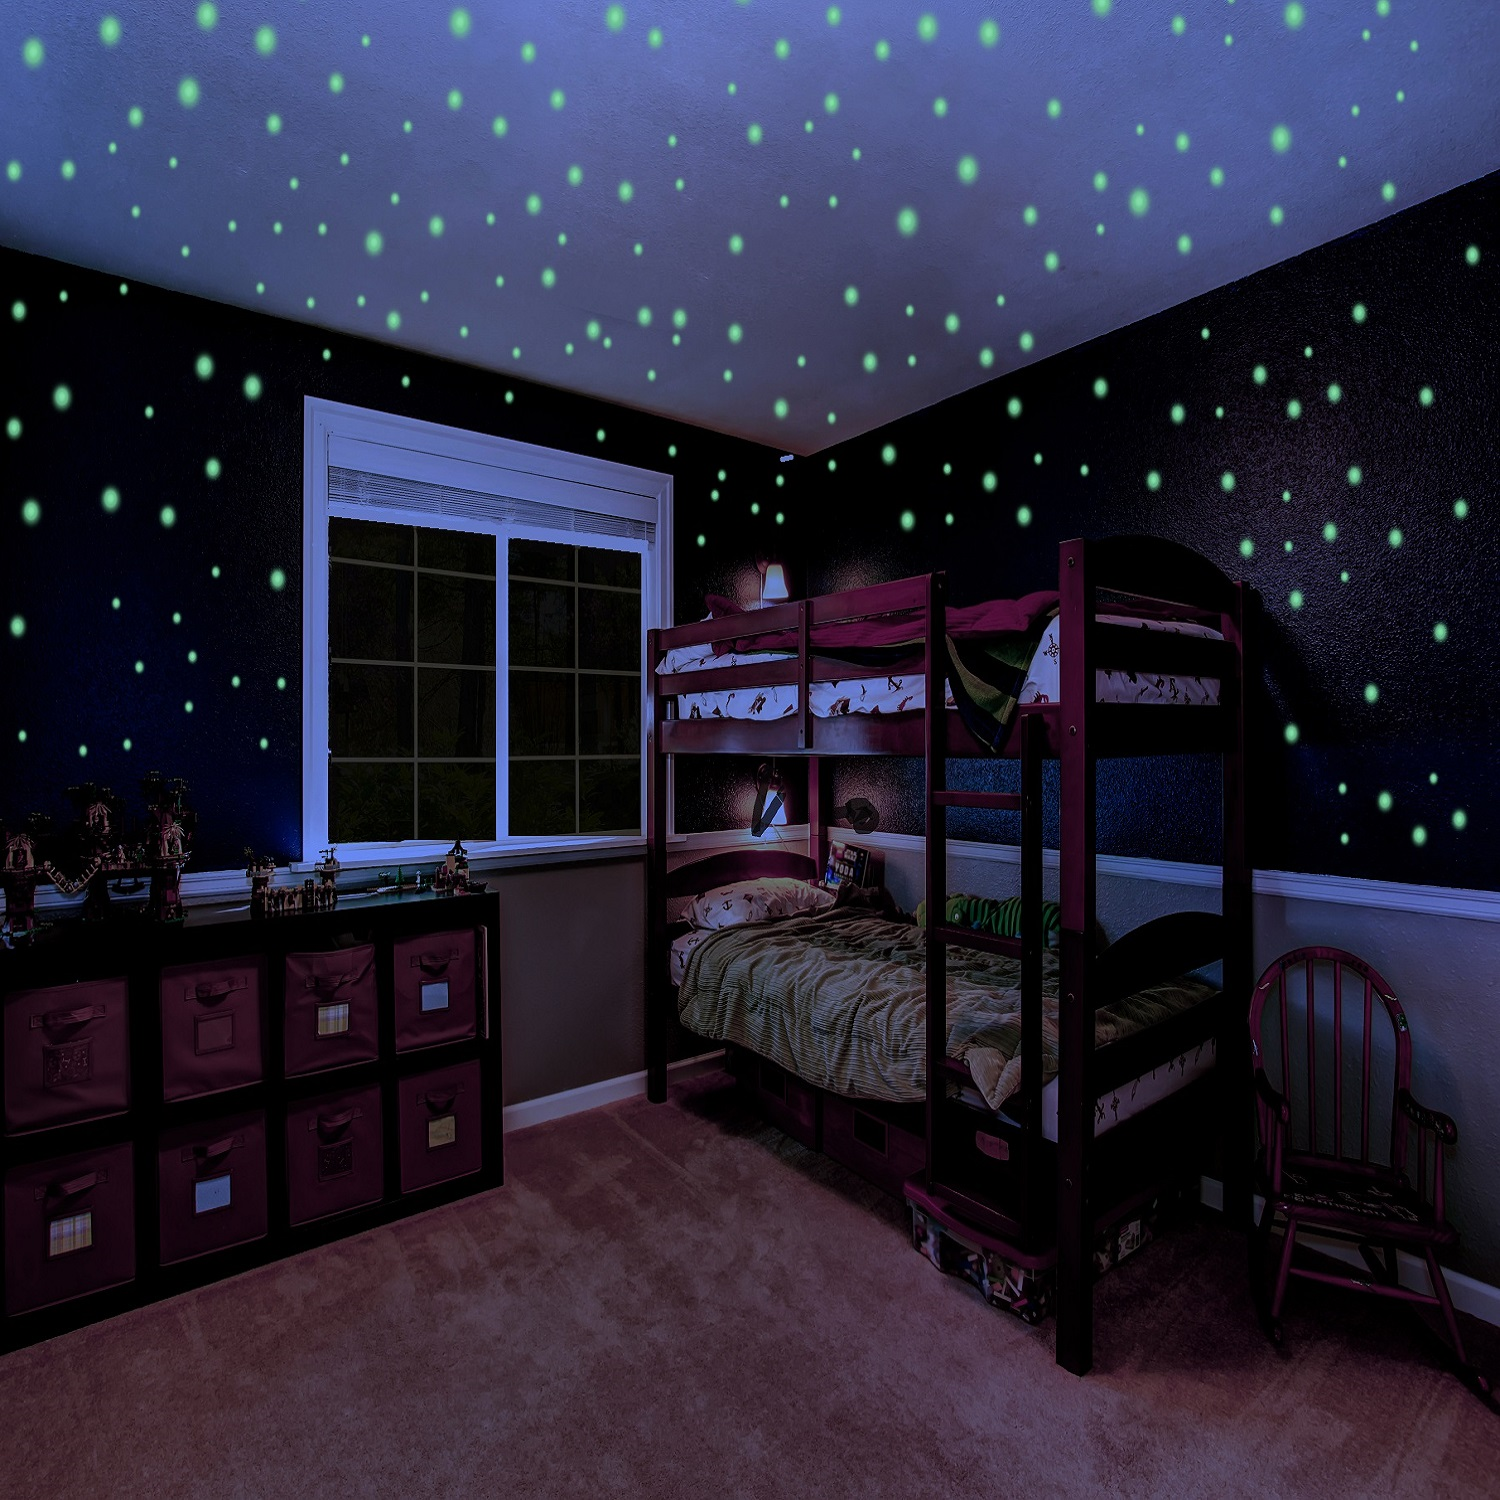 Glow in the Dark Stars for Kids Self Adhesive Glowing Star Decal for Children's Bedrooms Glow In The Dark Star Ceiling and Wall Stickers 732 3D Glowing Dots for Nurseries Kid Rooms or Dorms